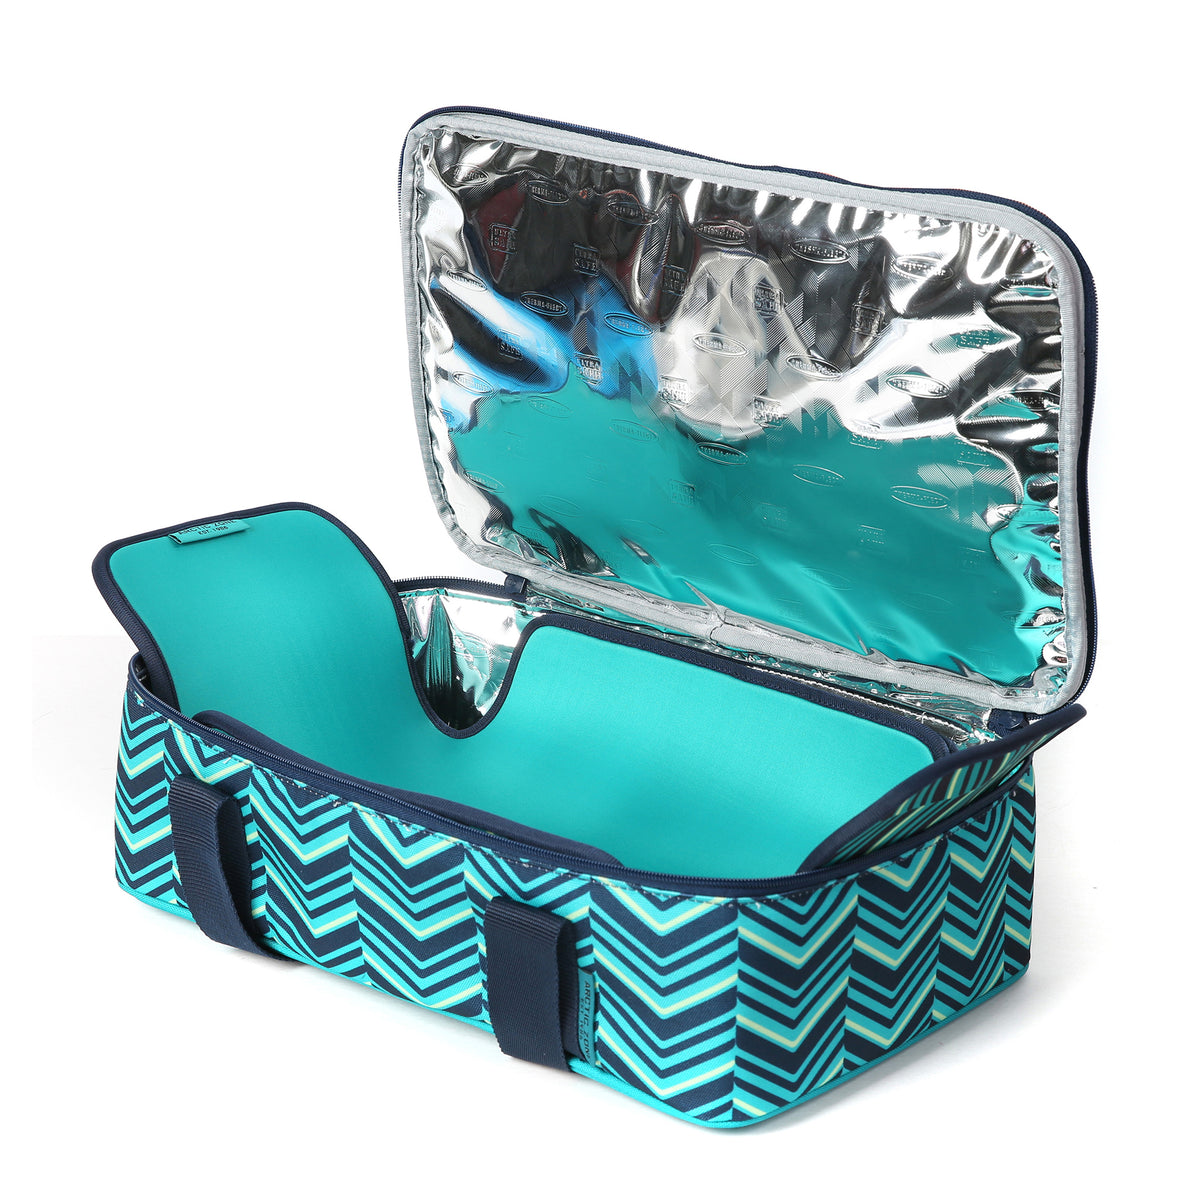 Arctic Zone® Food Pro Thermal Carrier -Teal - Open with trivet